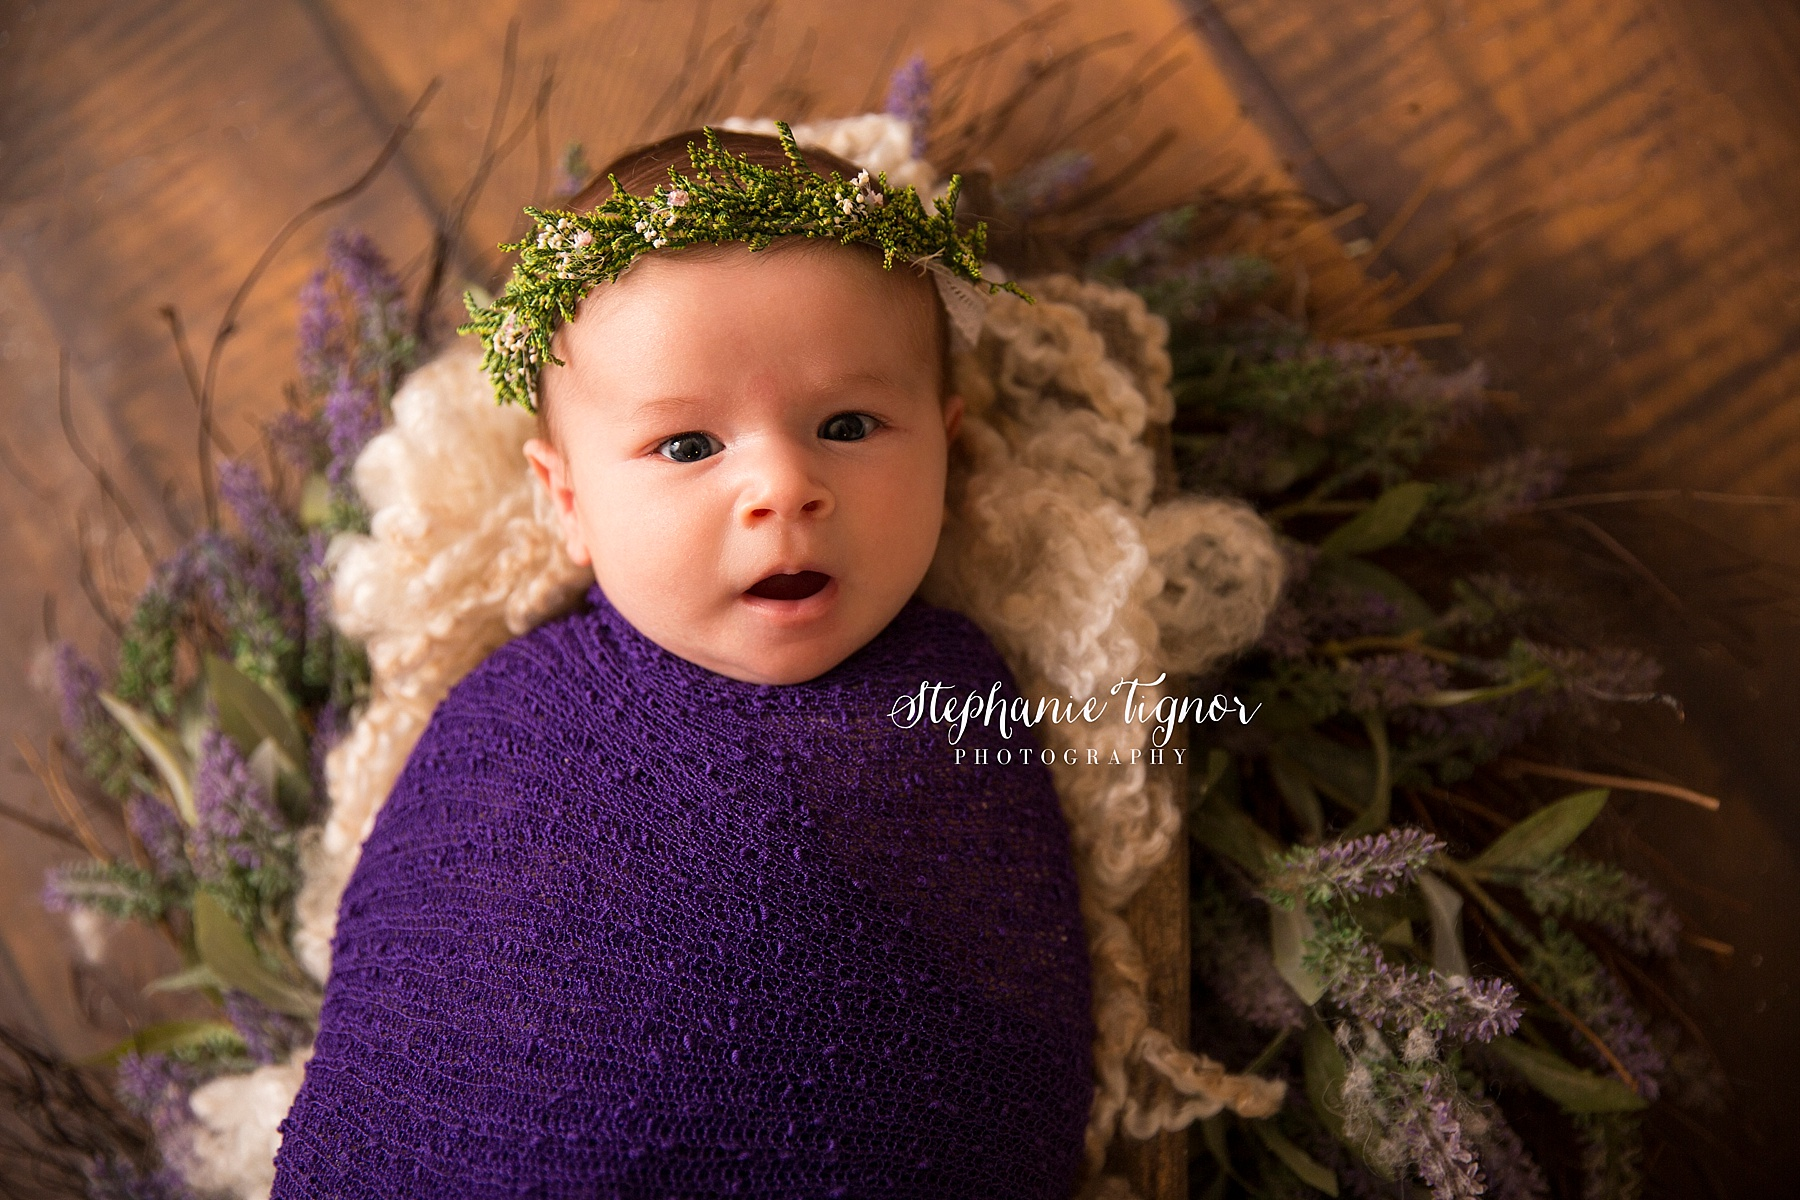 Stephanie Tignor Photography | Fredericksburg VA Newborn Photographer | Warrenton VA Newborn Photographer | Stafford VA Newborn Photographer | Newborn Photographer, swaddle newborn session, swaddled baby, swaddled newborn, baby photos